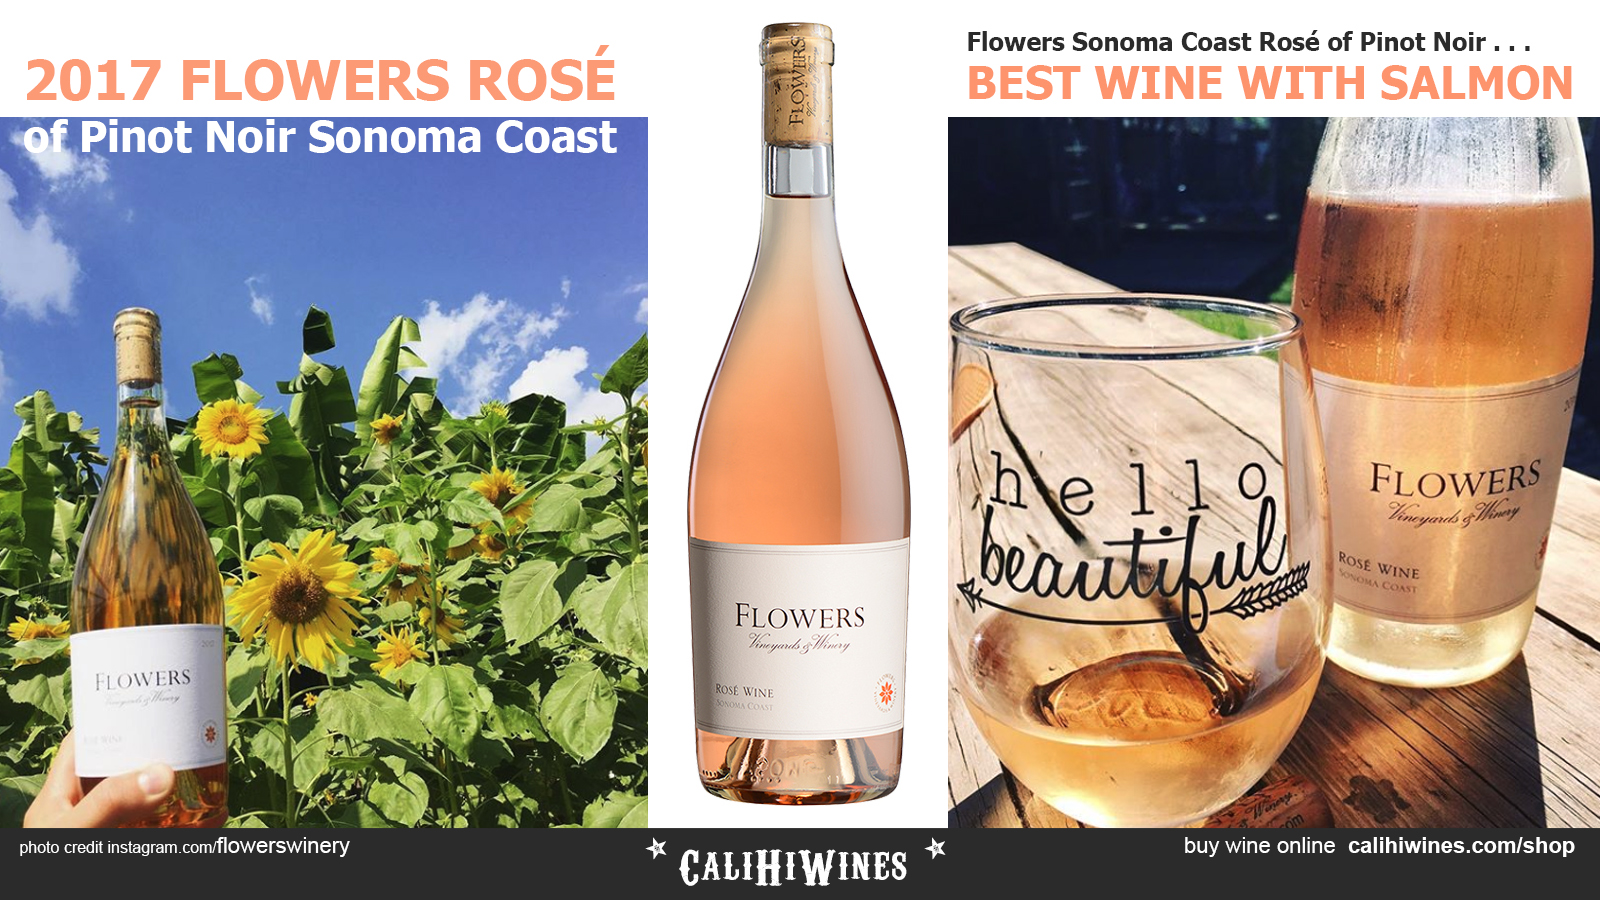 2017 FLOWERS Rose of Pinot Noir Sonoma Coast - Best Wine with Salmon